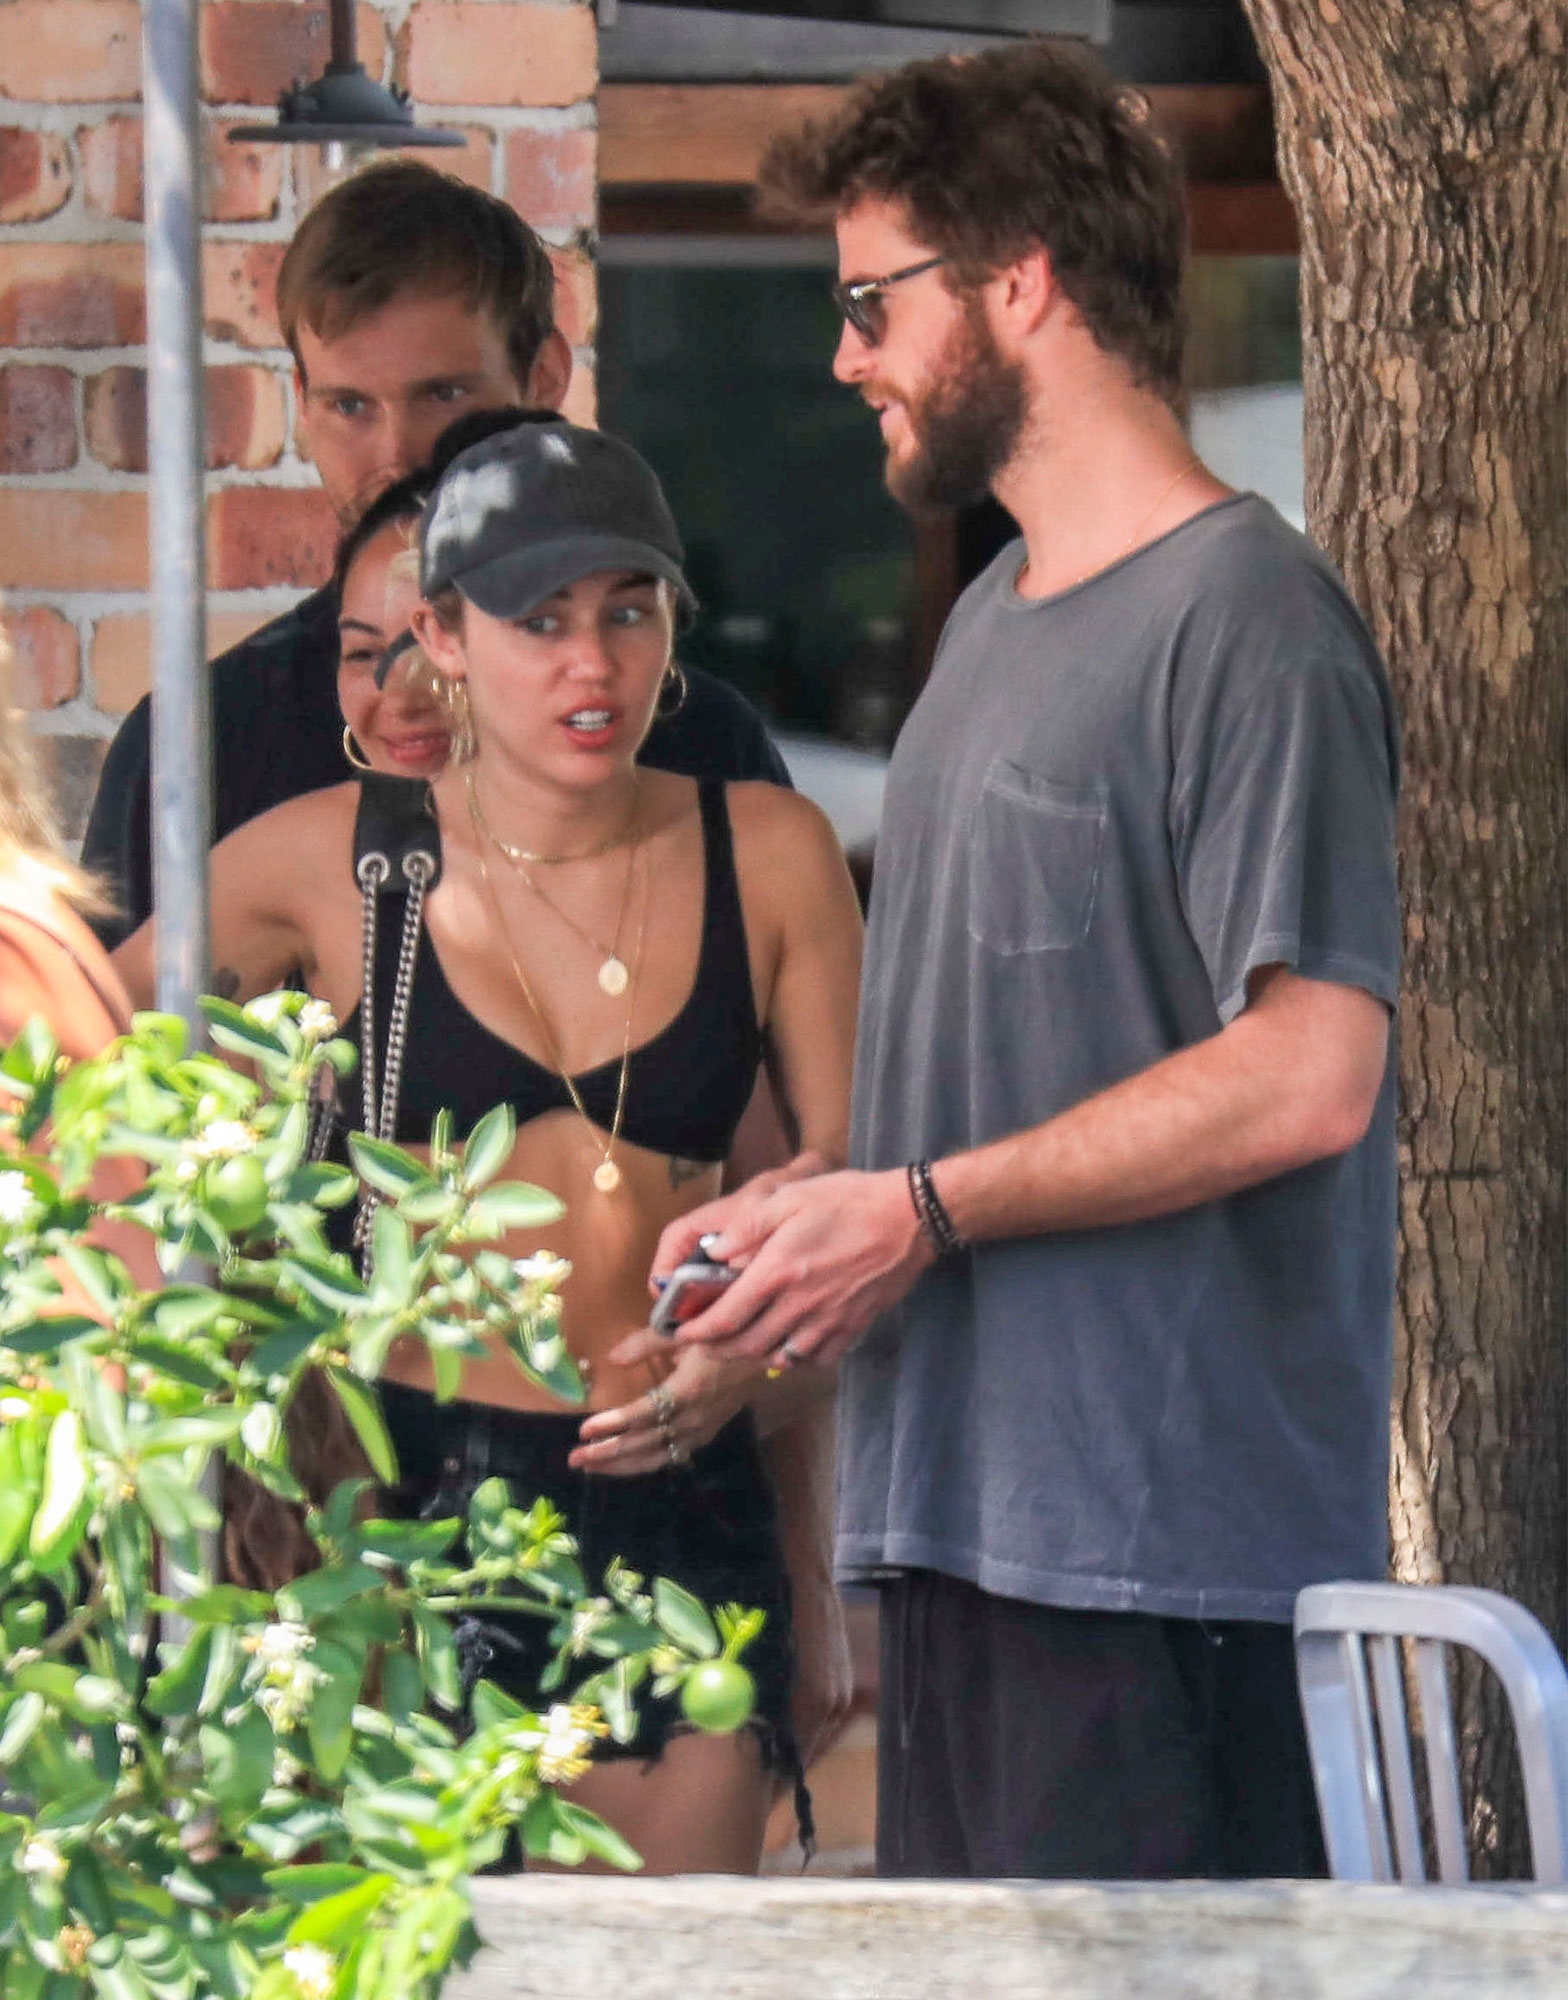 EXCLUSIVE: *PREMIUM EXCLUSIVE* *NO MAIL ONLINE*  Miley Cyrus and Liam Hemsworth head out for lunch with Liam's parents in Byron Bay